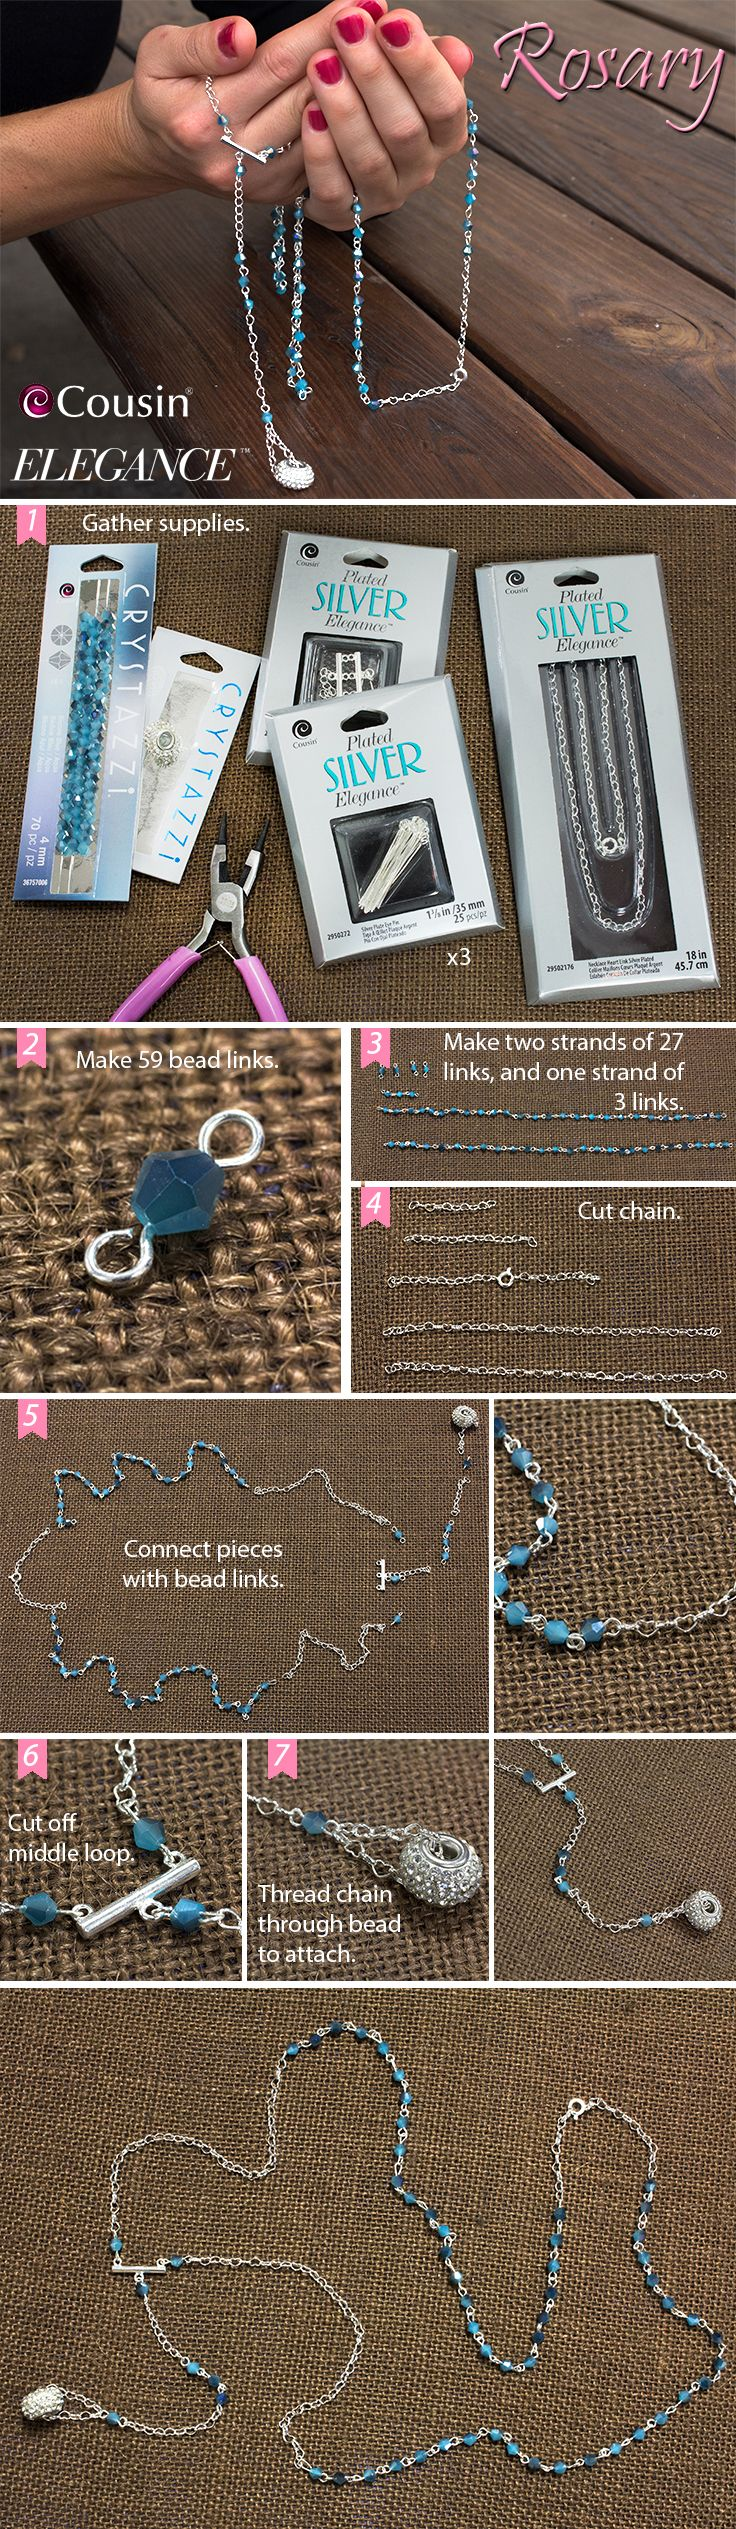 Make your own special Rosary following this easy DIY step